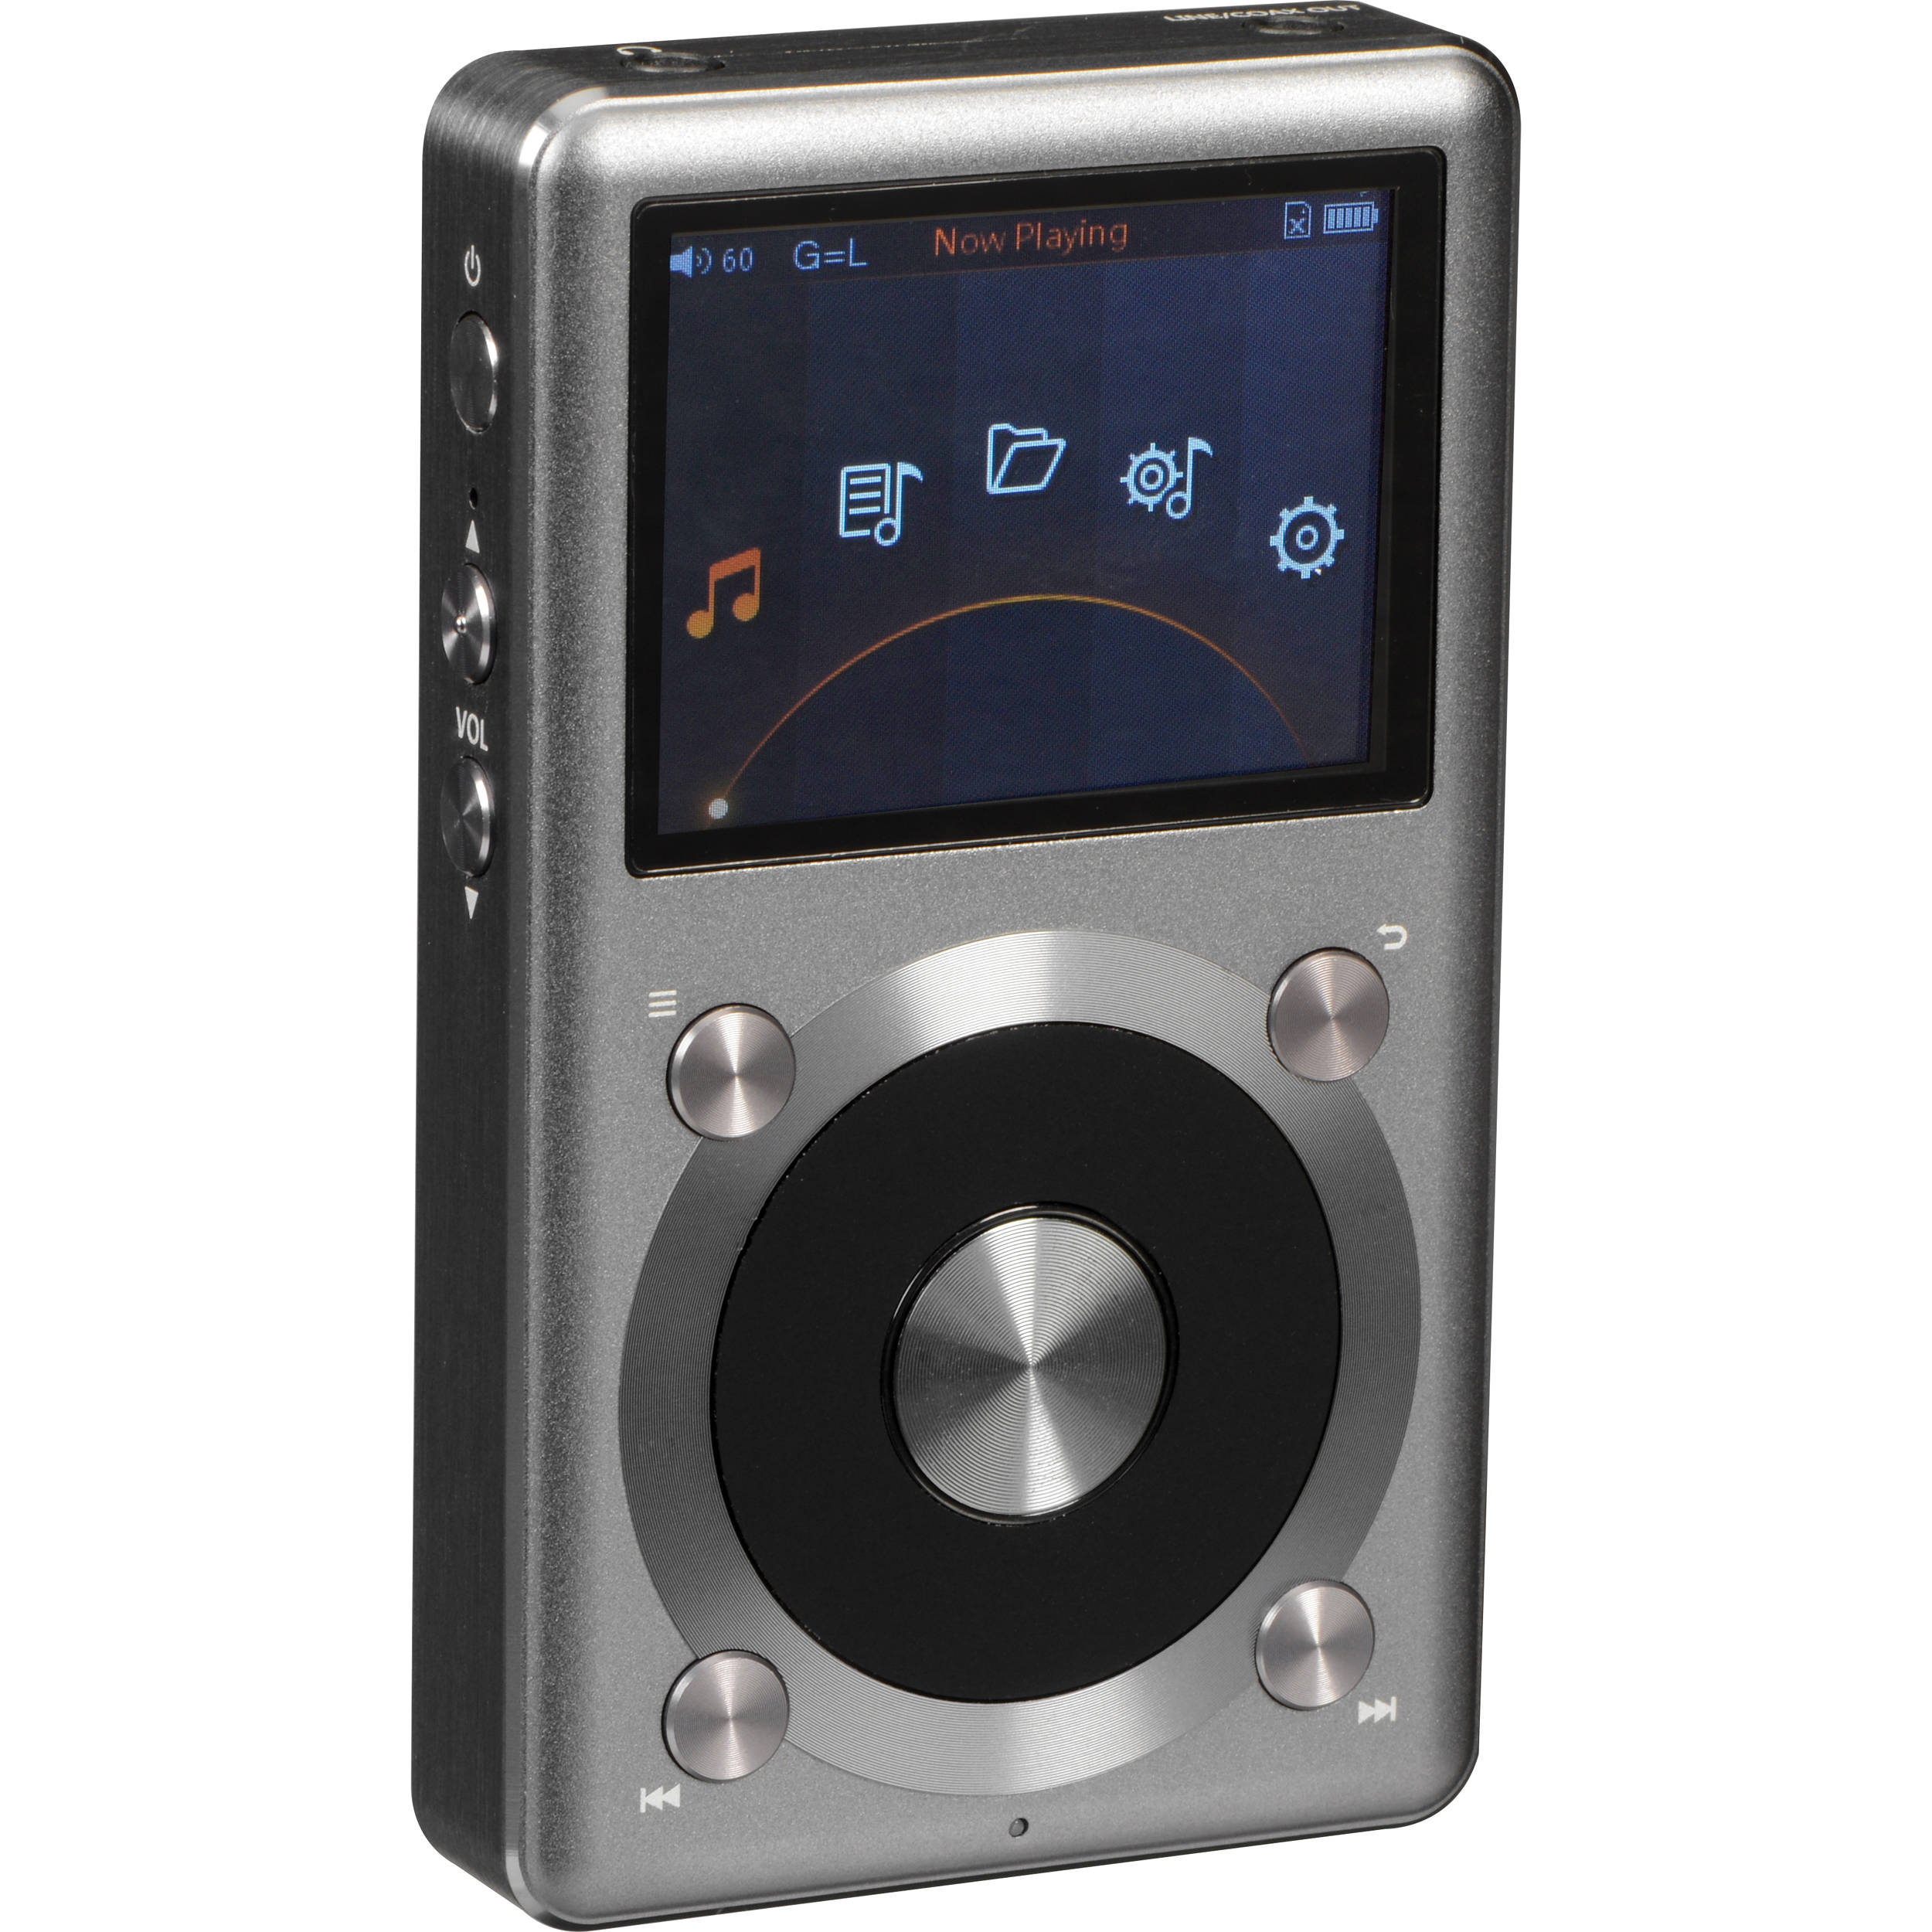 FIIO X3 PORTABLE PLAYER WINDOWS 8 X64 DRIVER